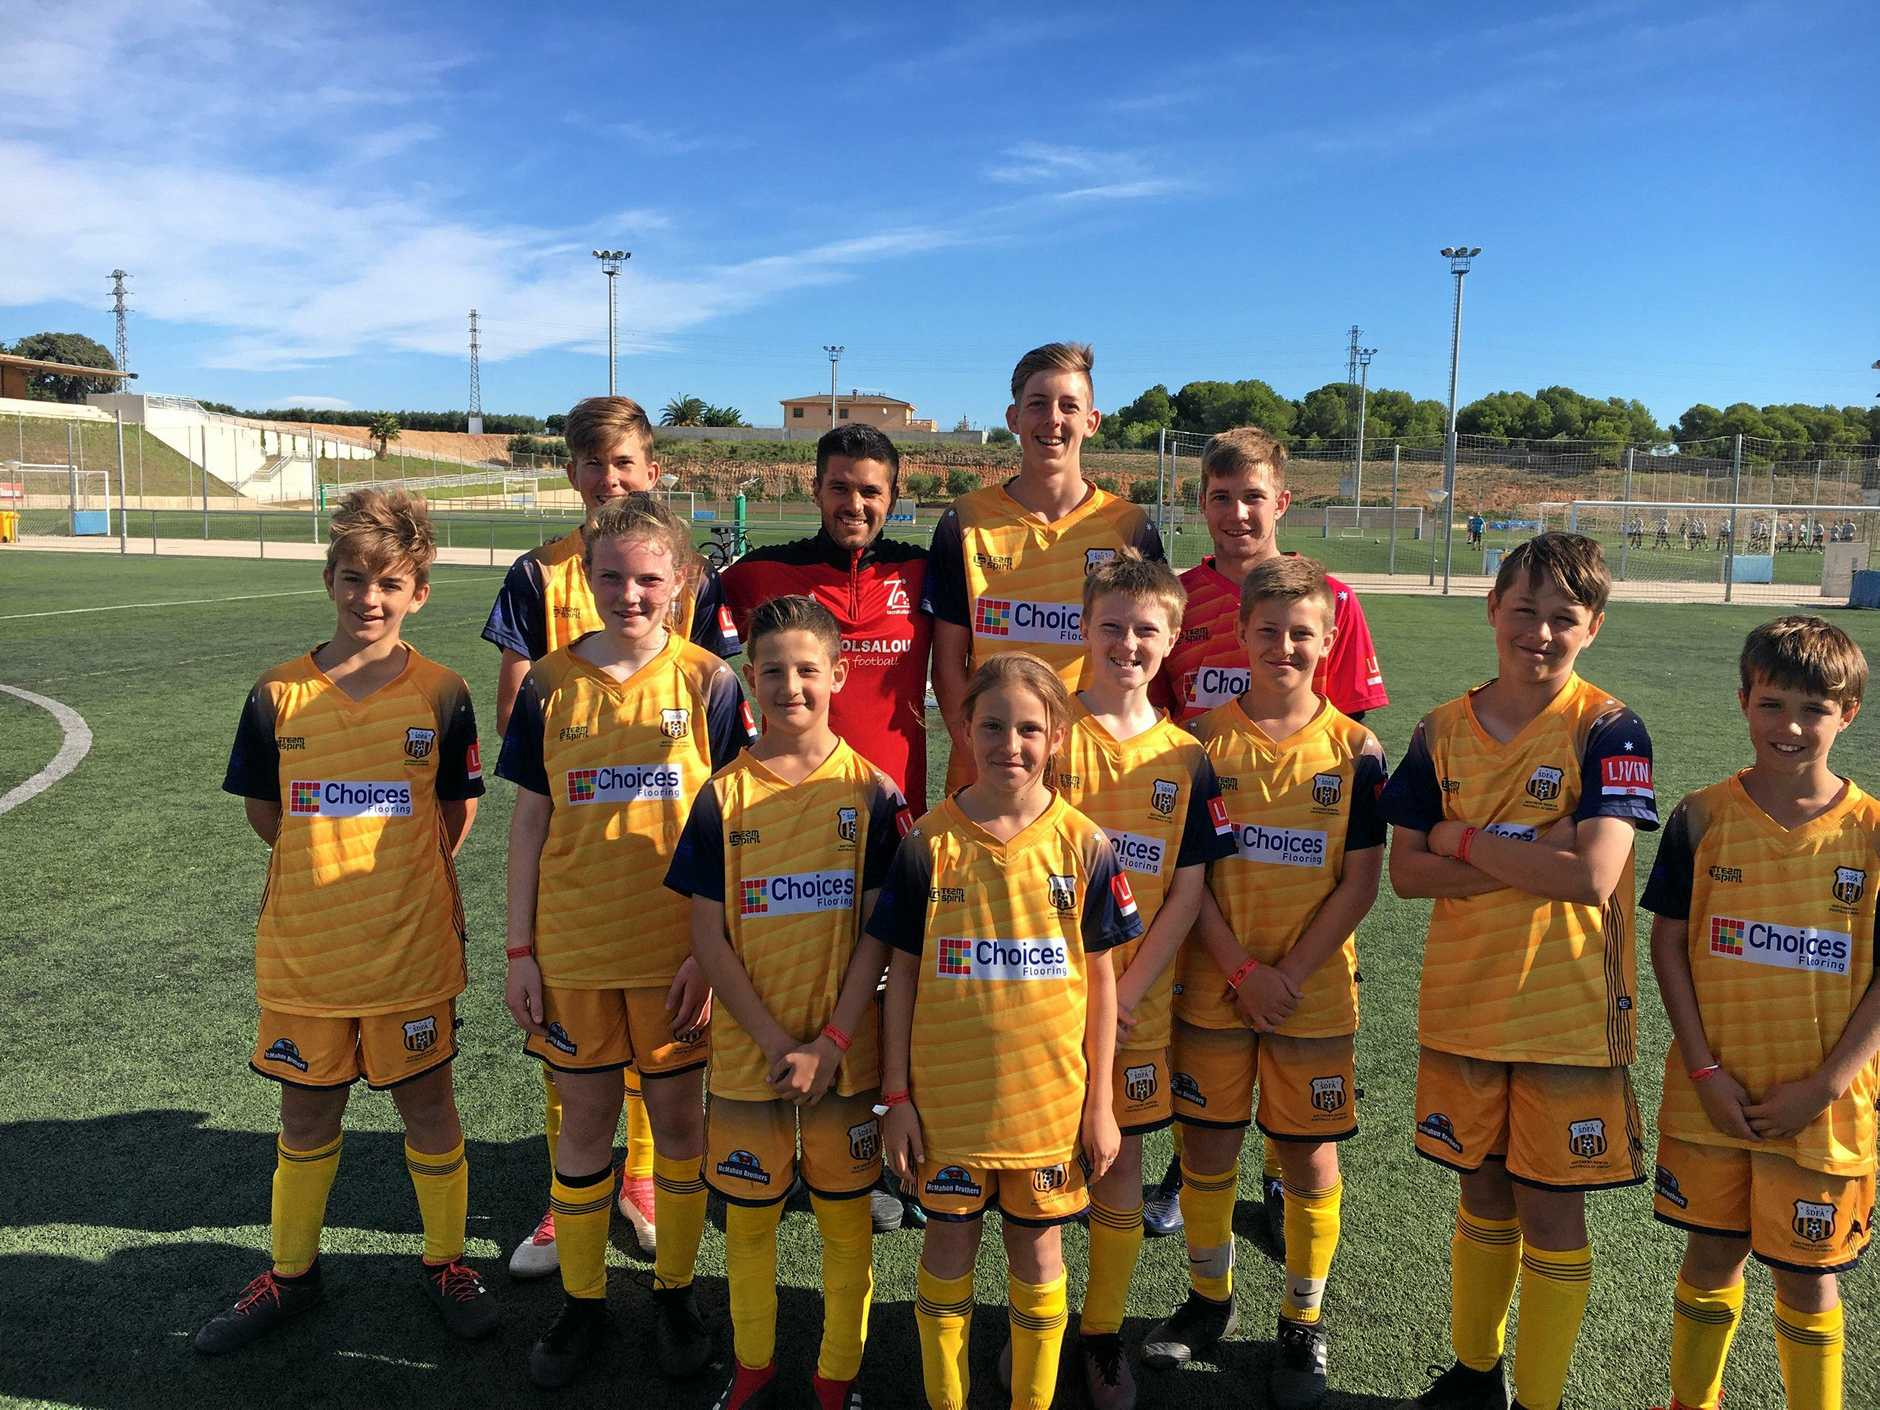 SPAIN TOUR: The Southern Downs Football Academy team (back, from left) Harry McMahon, Salou coach Marc Miquel, Declan Clegg, Lachlan Montgomery, (front) Joel Keevers, Mel Reedy, Boula Kairouz, Chloe Gaske, Jack Reedy, Hayden Gaske, Kweller and Percy Manfield at Salou field near Barcelona during last year's tour to Spain.